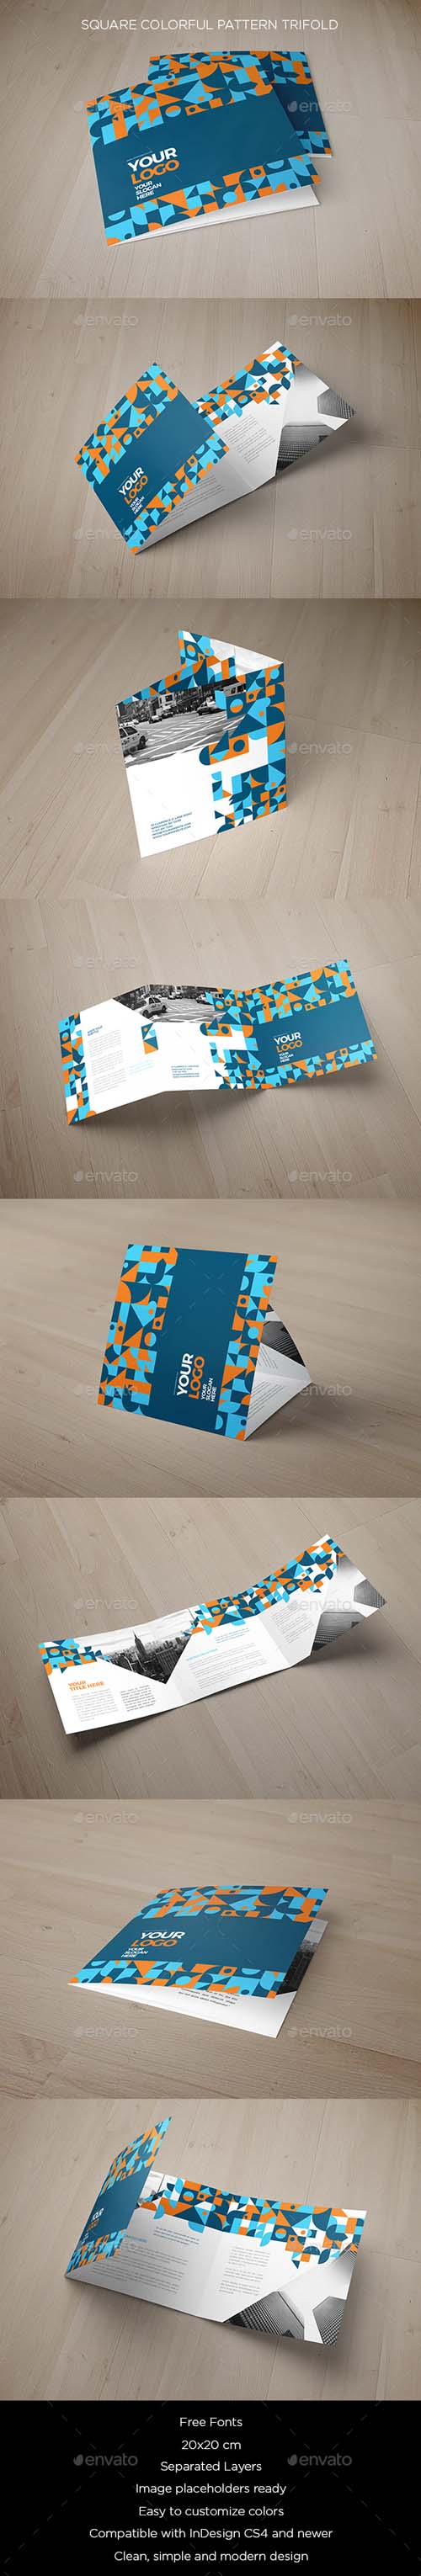 Square Colorful Pattern Trifold 19239485